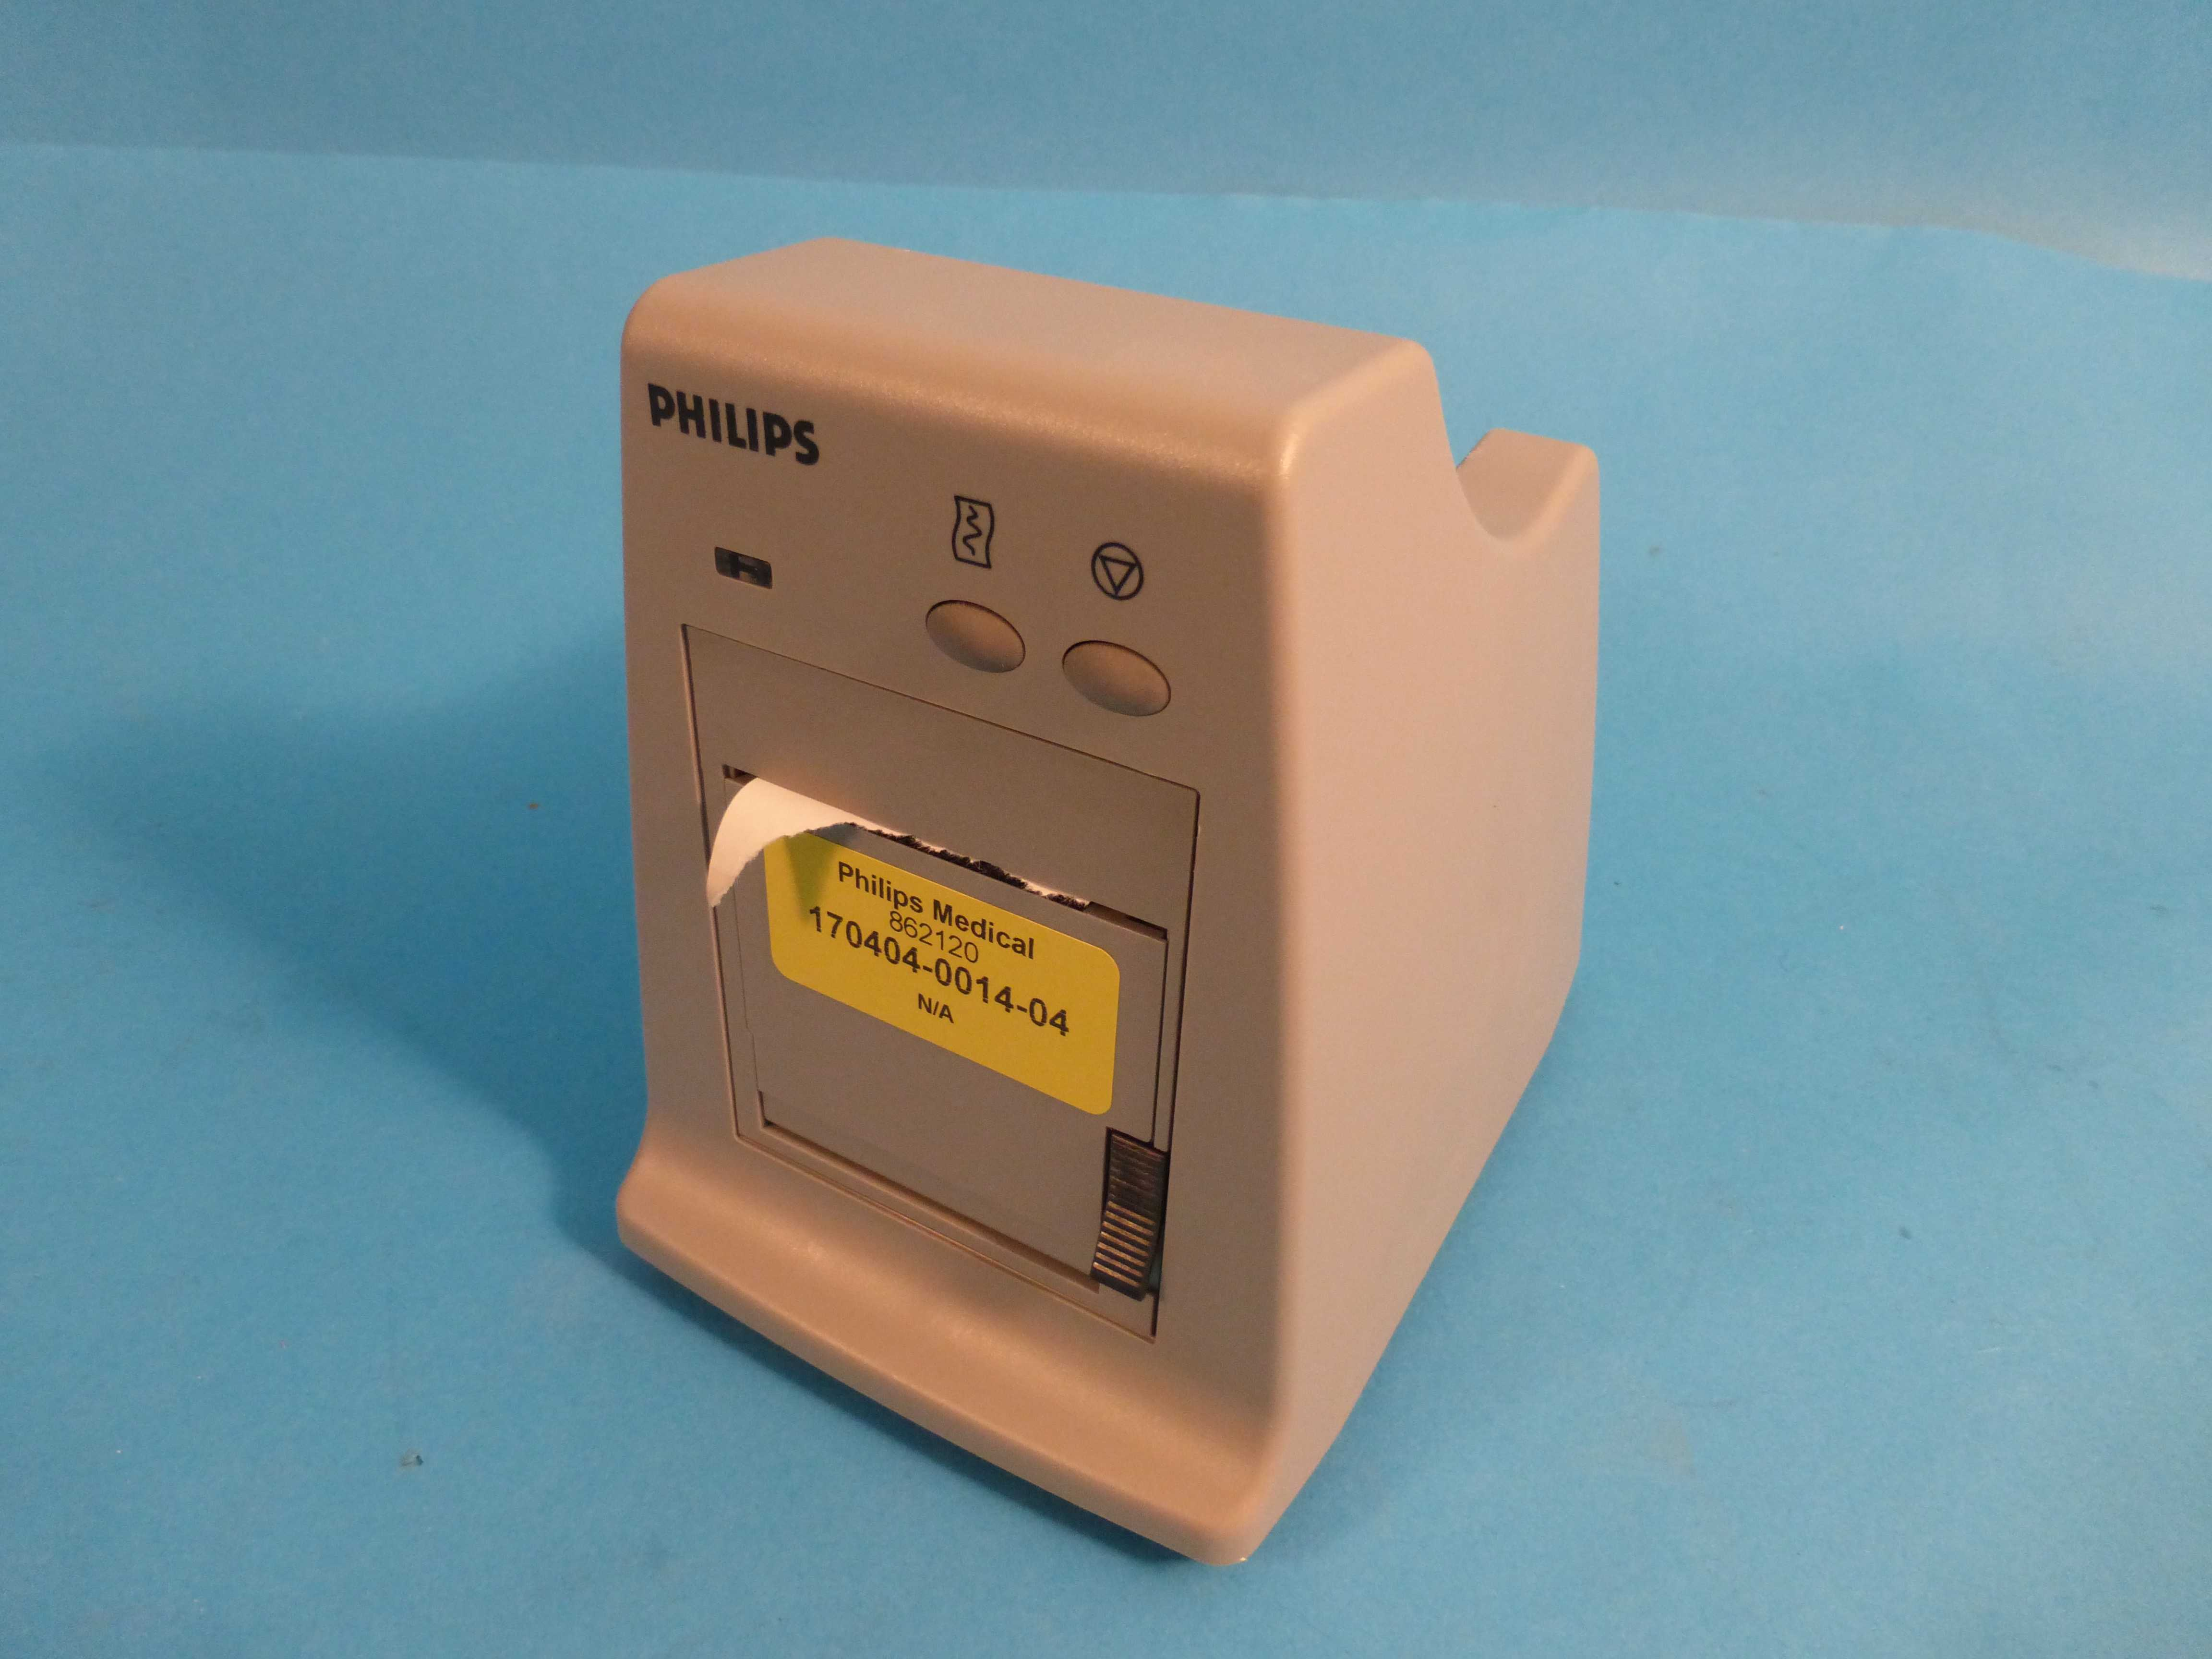 Philips Medical Systems 862120 Recorder Nws Medical Scientific